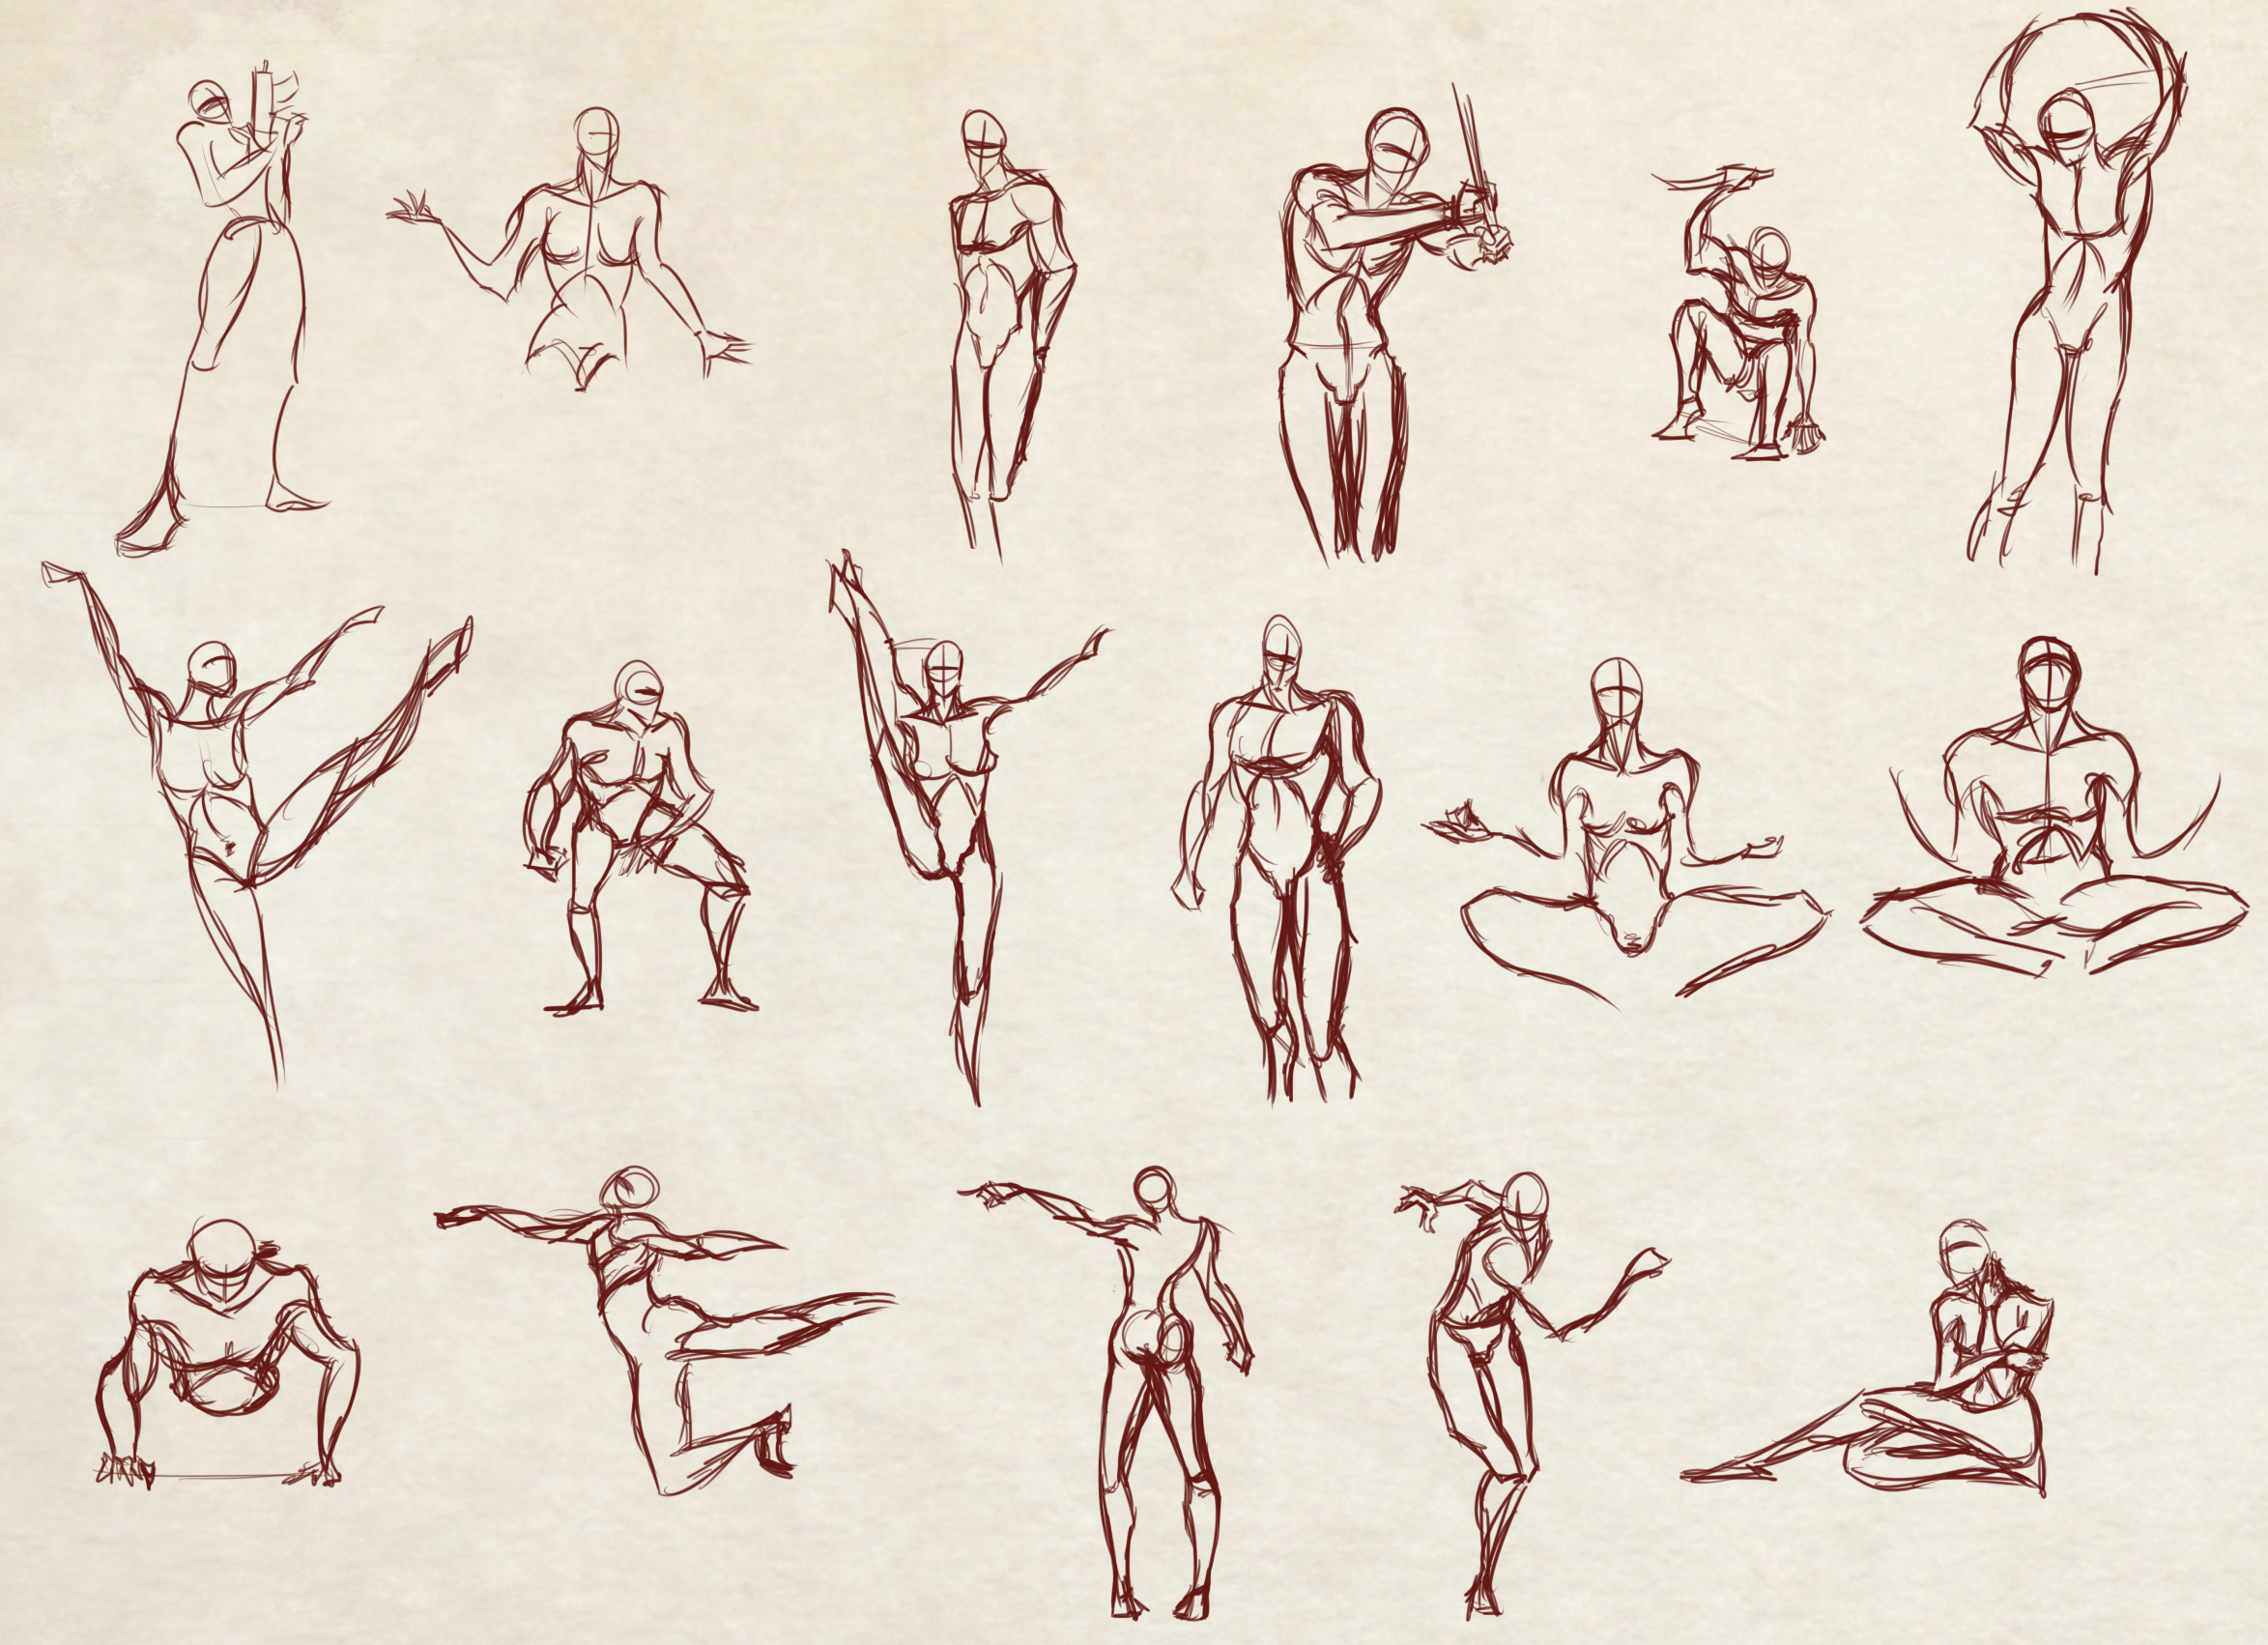 2347x1702 Moar 2 Minutes Poses Speeddrawing Video Included By Dex91